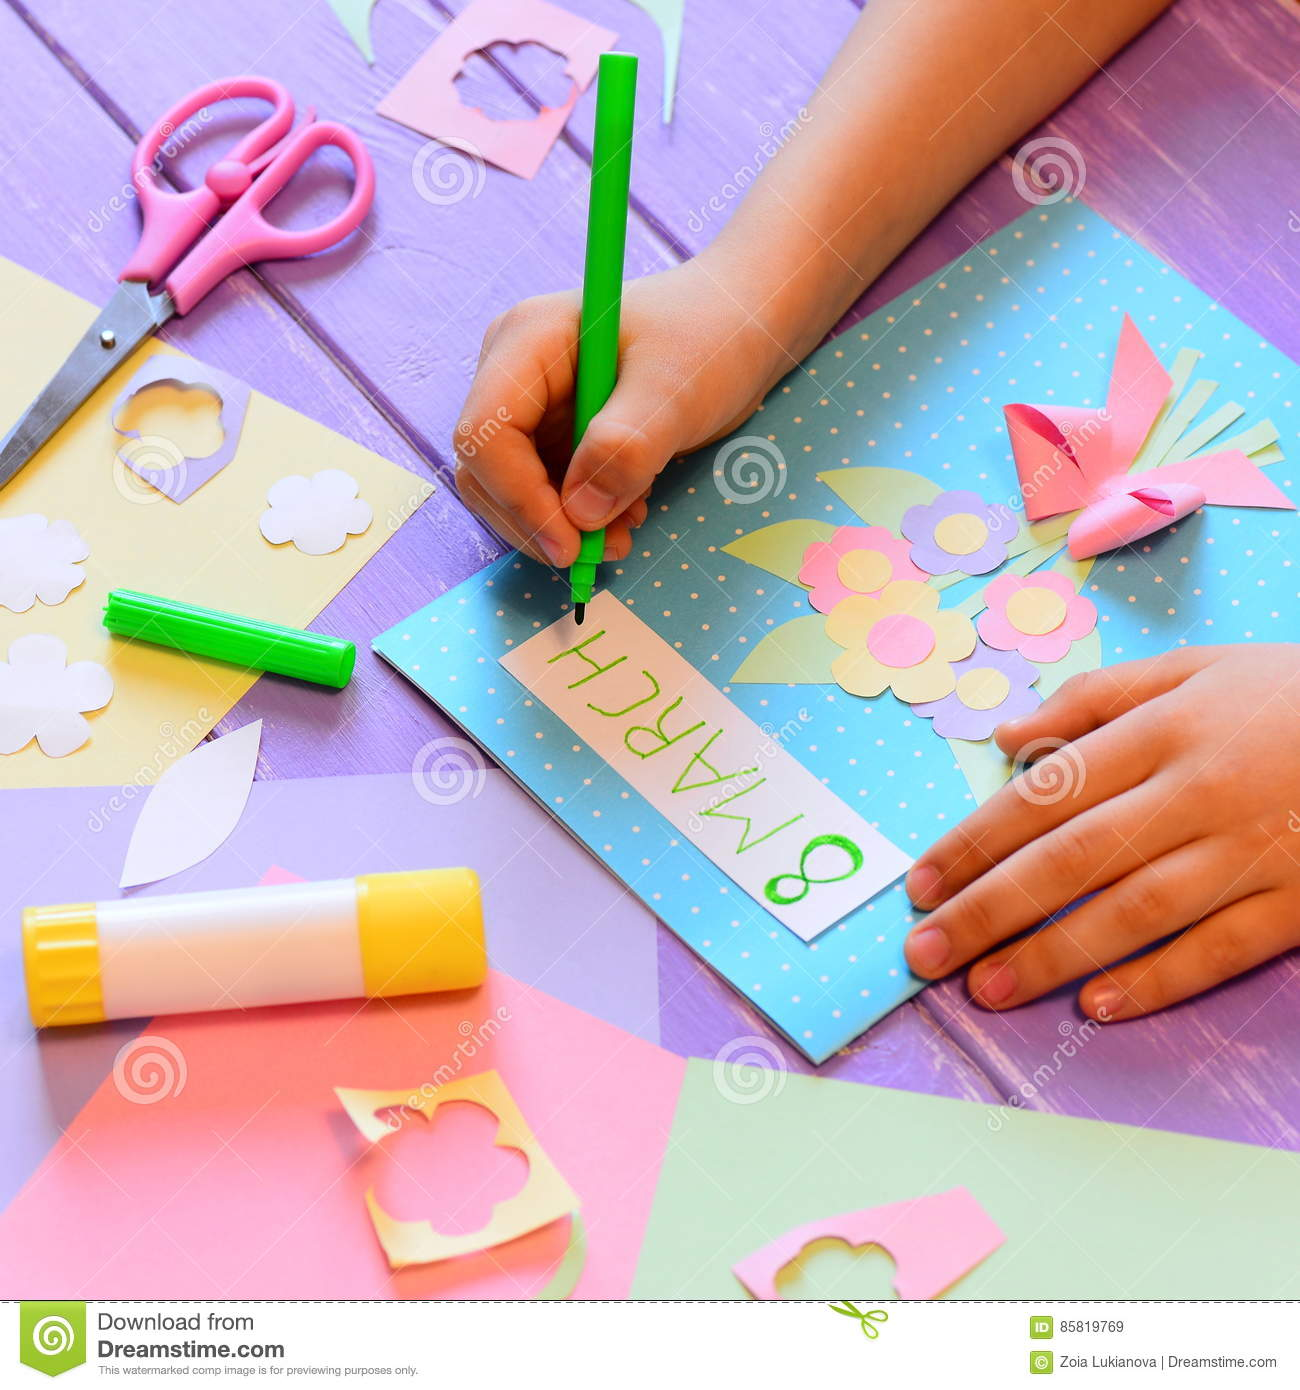 Creating A Greeting Card With Flowers For Mom Child Holds A Pen In